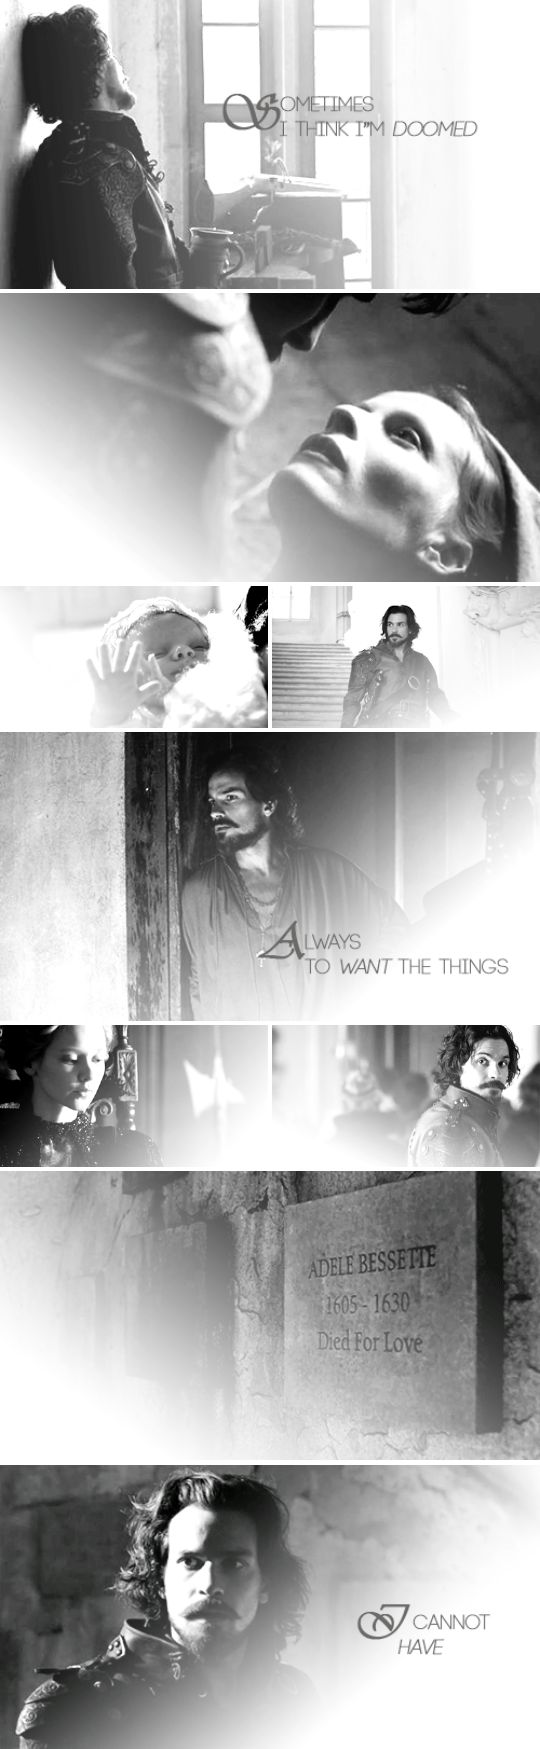 """The Musketeers - Aramis (2x01) """"Sometimes I think I'm doomed always to want the things I cannot have."""""""